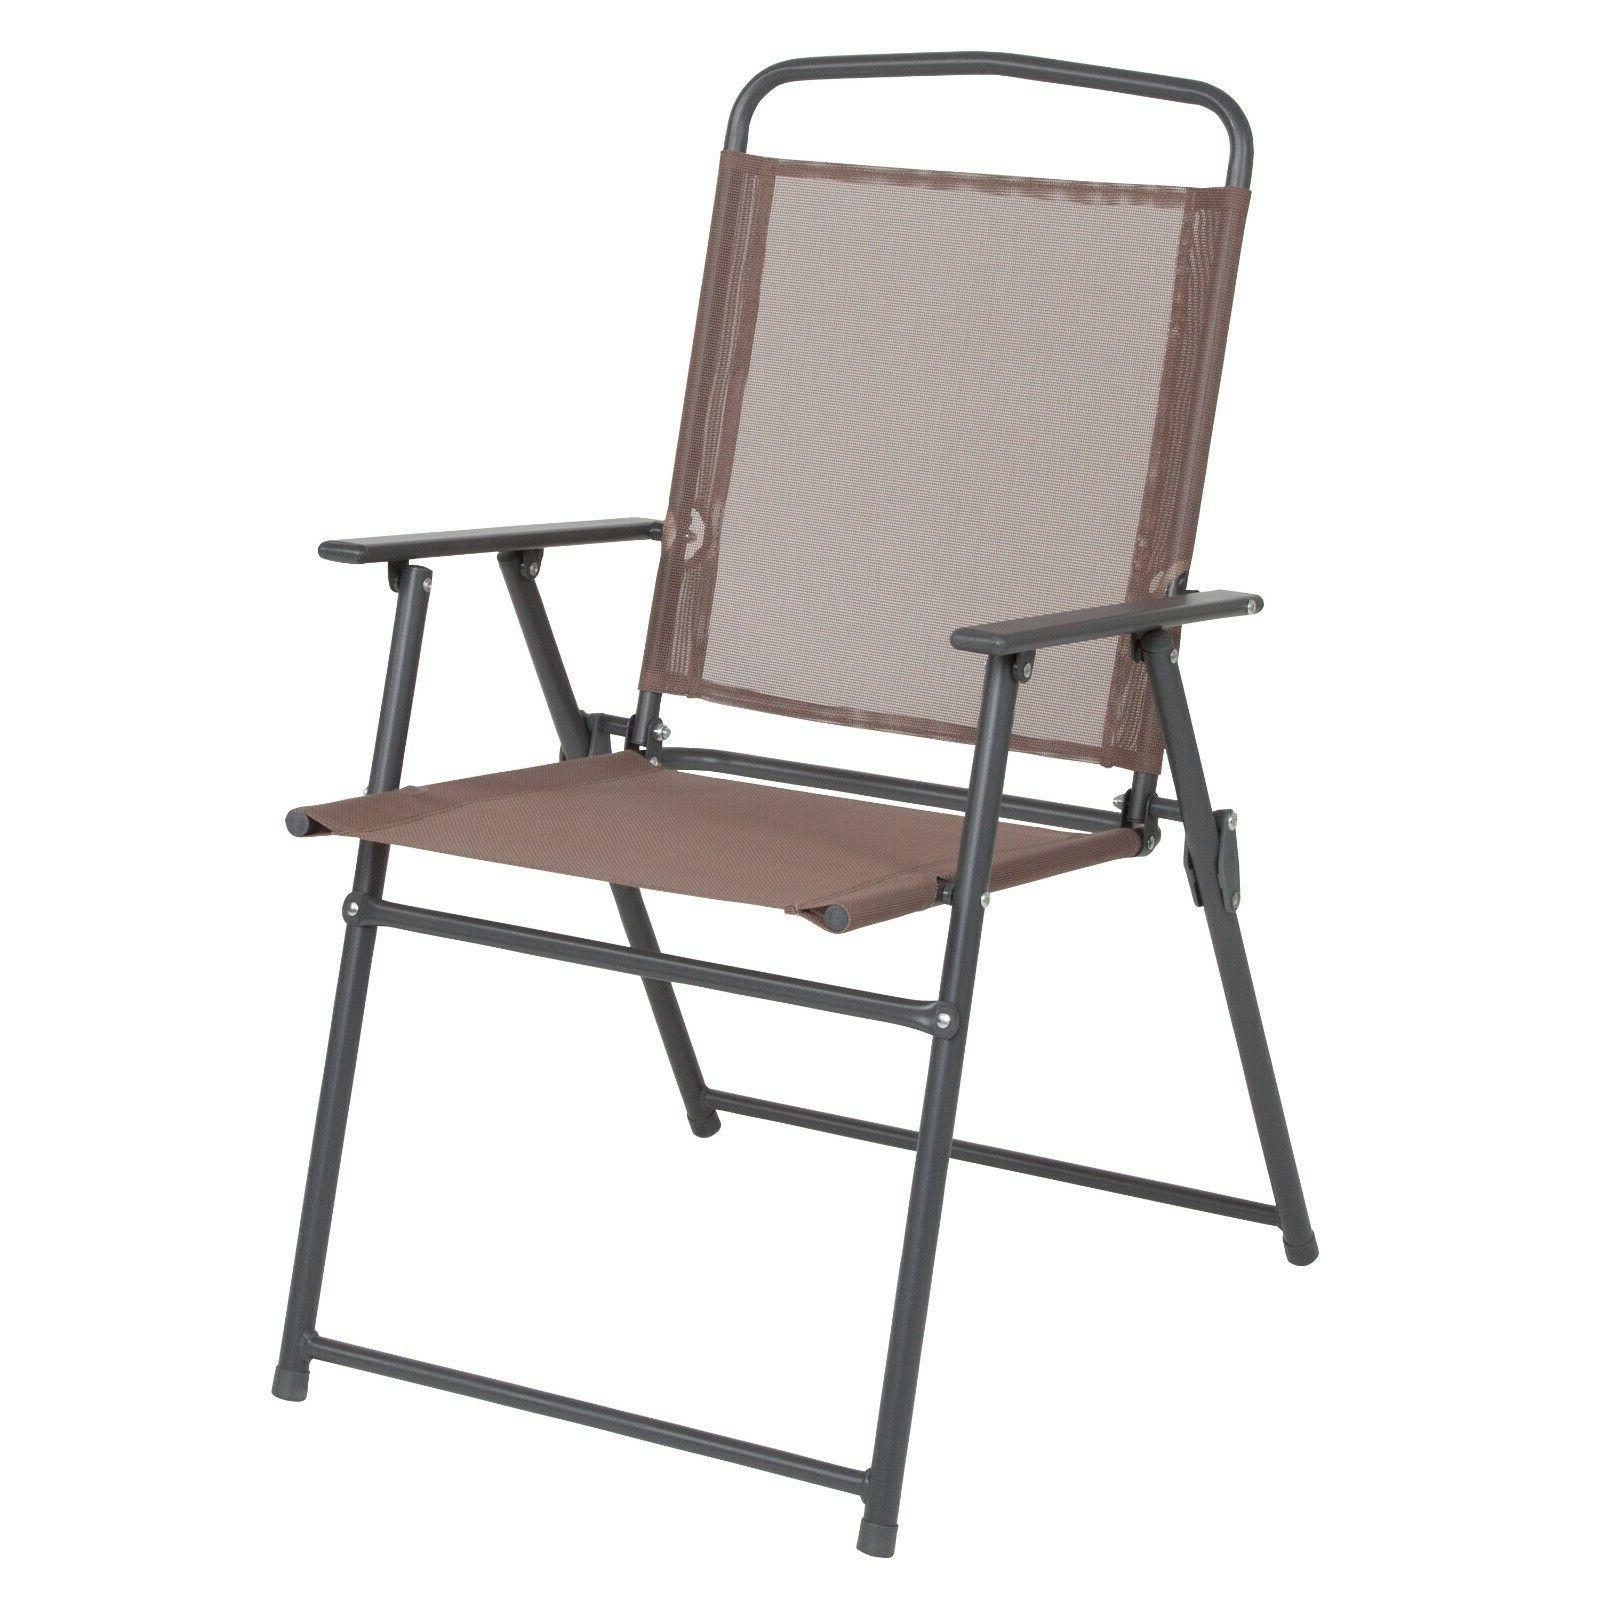 Patio Sets With Umbrella Commercial Conversation New